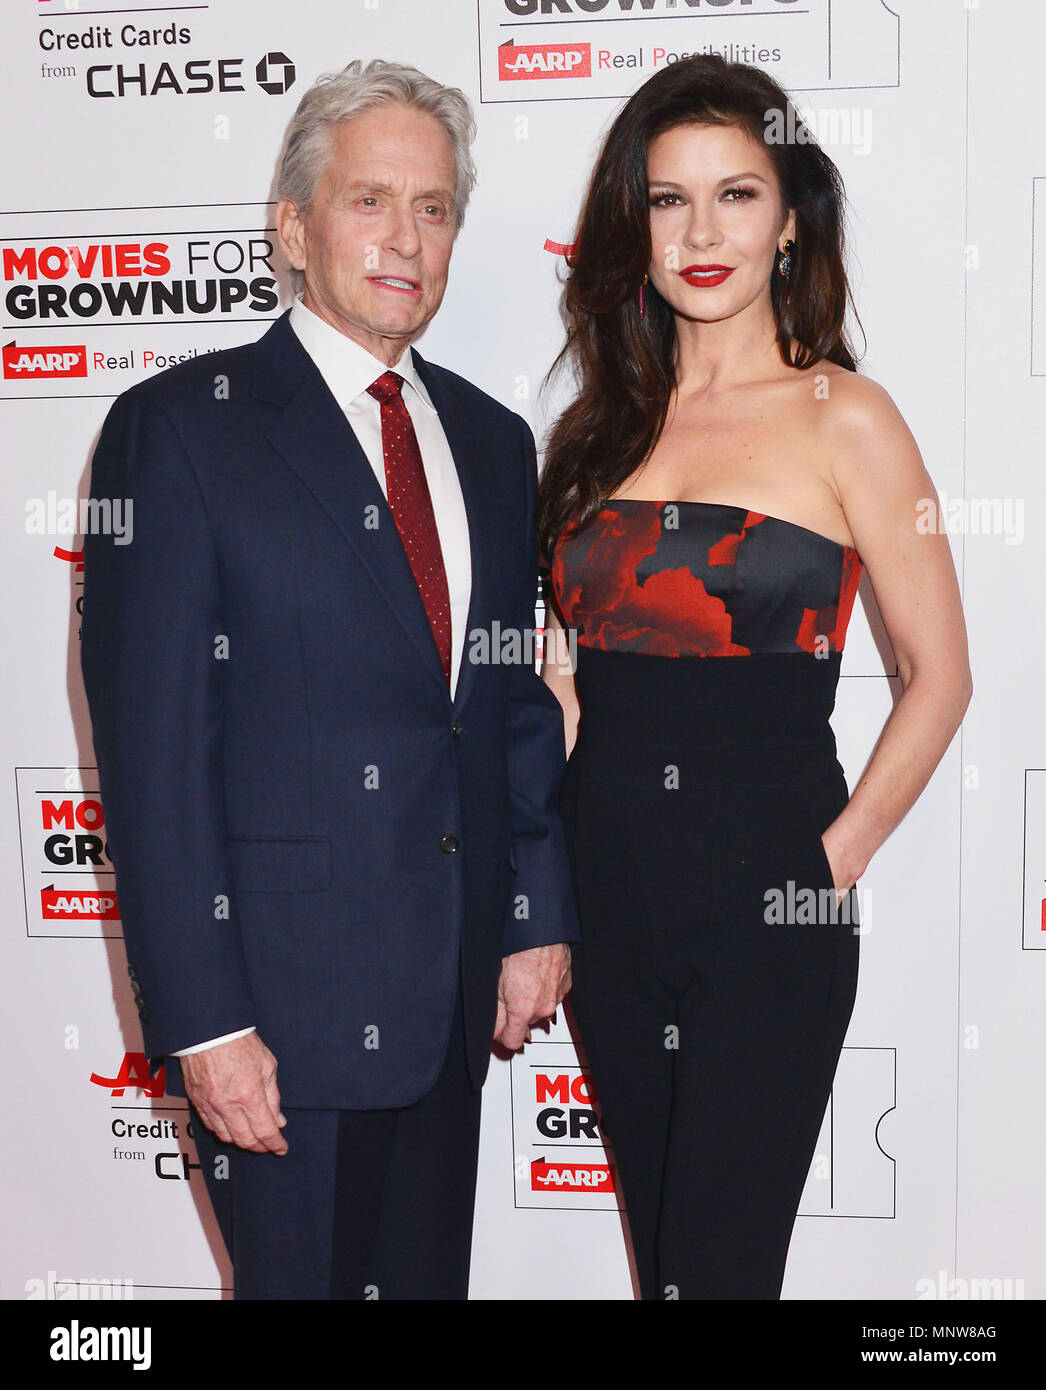 a _Michael Douglas, Catherine Zeta Jones 002 at the Movies For Grow Ups - AARP - at the Beverly Wilshire Hotel in Los Angeles. February 8, 2016.a  _Michael Douglas, Catherine Zeta Jones 000 ------------- Red Carpet Event, Vertical, USA, Film Industry, Celebrities,  Photography, Bestof, Arts Culture and Entertainment, Topix Celebrities fashion /  Vertical, Best of, Event in Hollywood Life - California,  Red Carpet and backstage, USA, Film Industry, Celebrities,  movie celebrities, TV celebrities, Music celebrities, Photography, Bestof, Arts Culture and Entertainment,  Topix, vertical,  family f - Stock Image